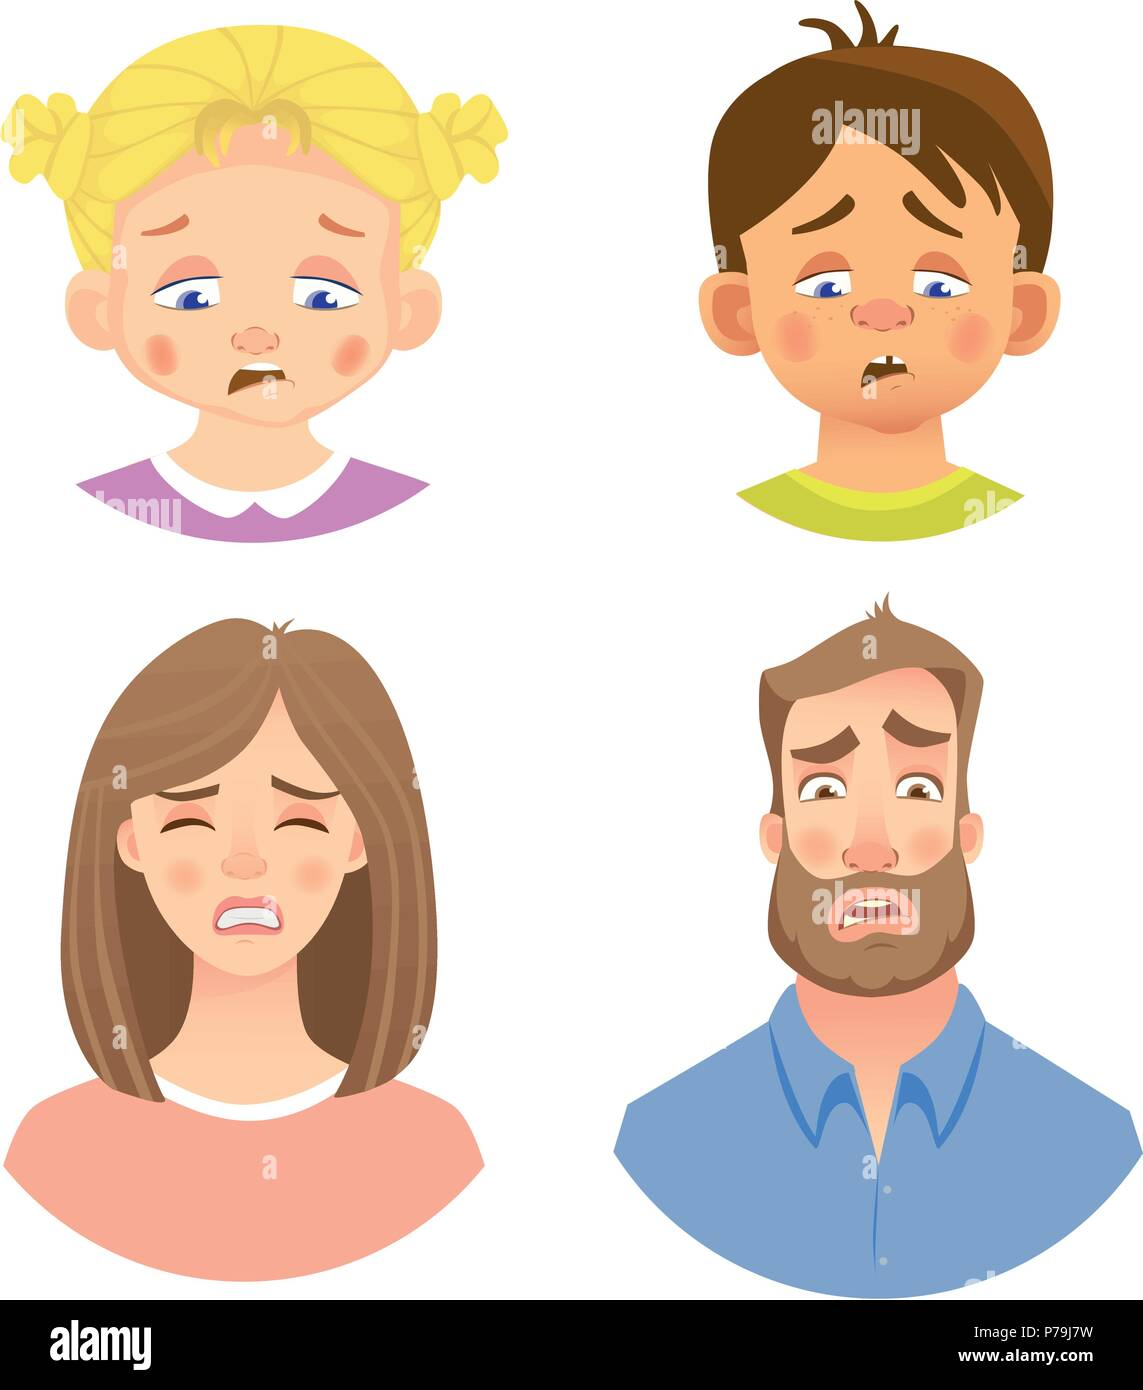 Emotions of human face. Set of avatars with different emotions. Vector illustration - Stock Vector